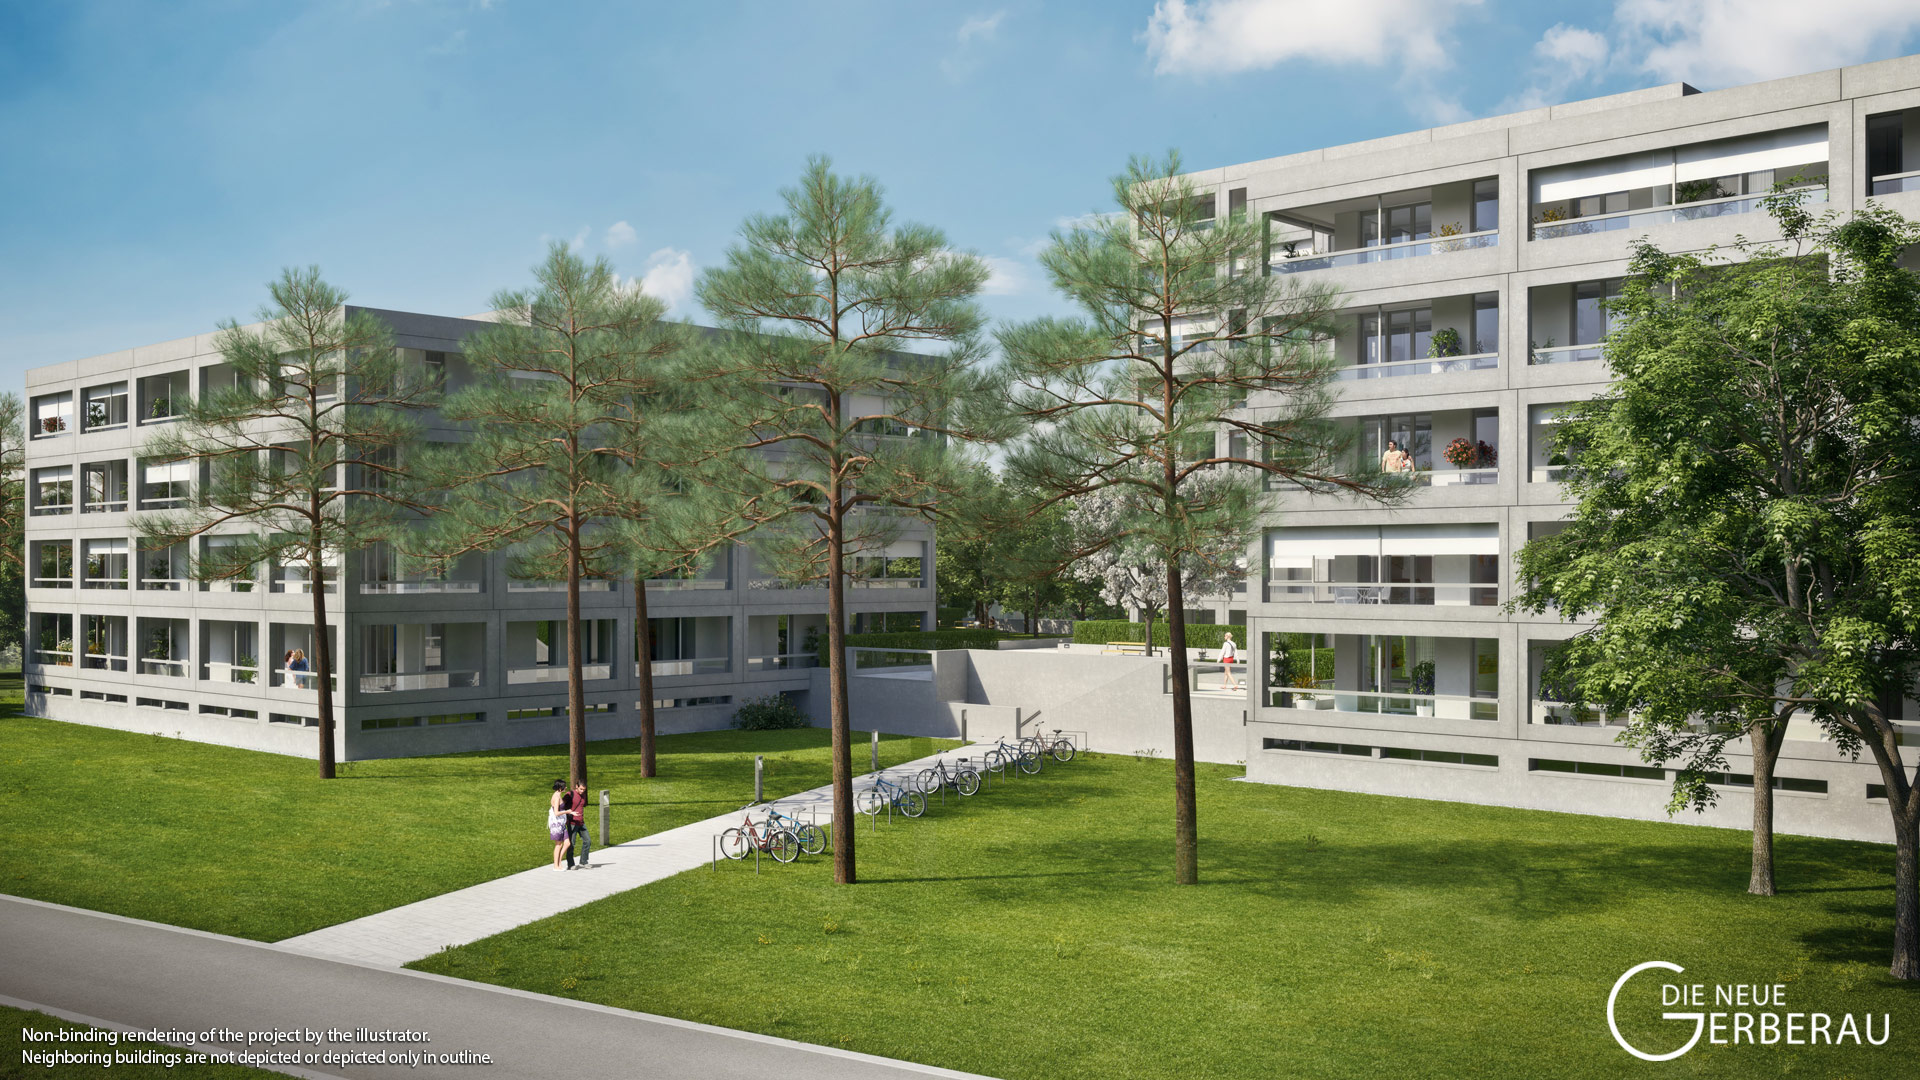 Property Die neue Gerberau - Illustration 2